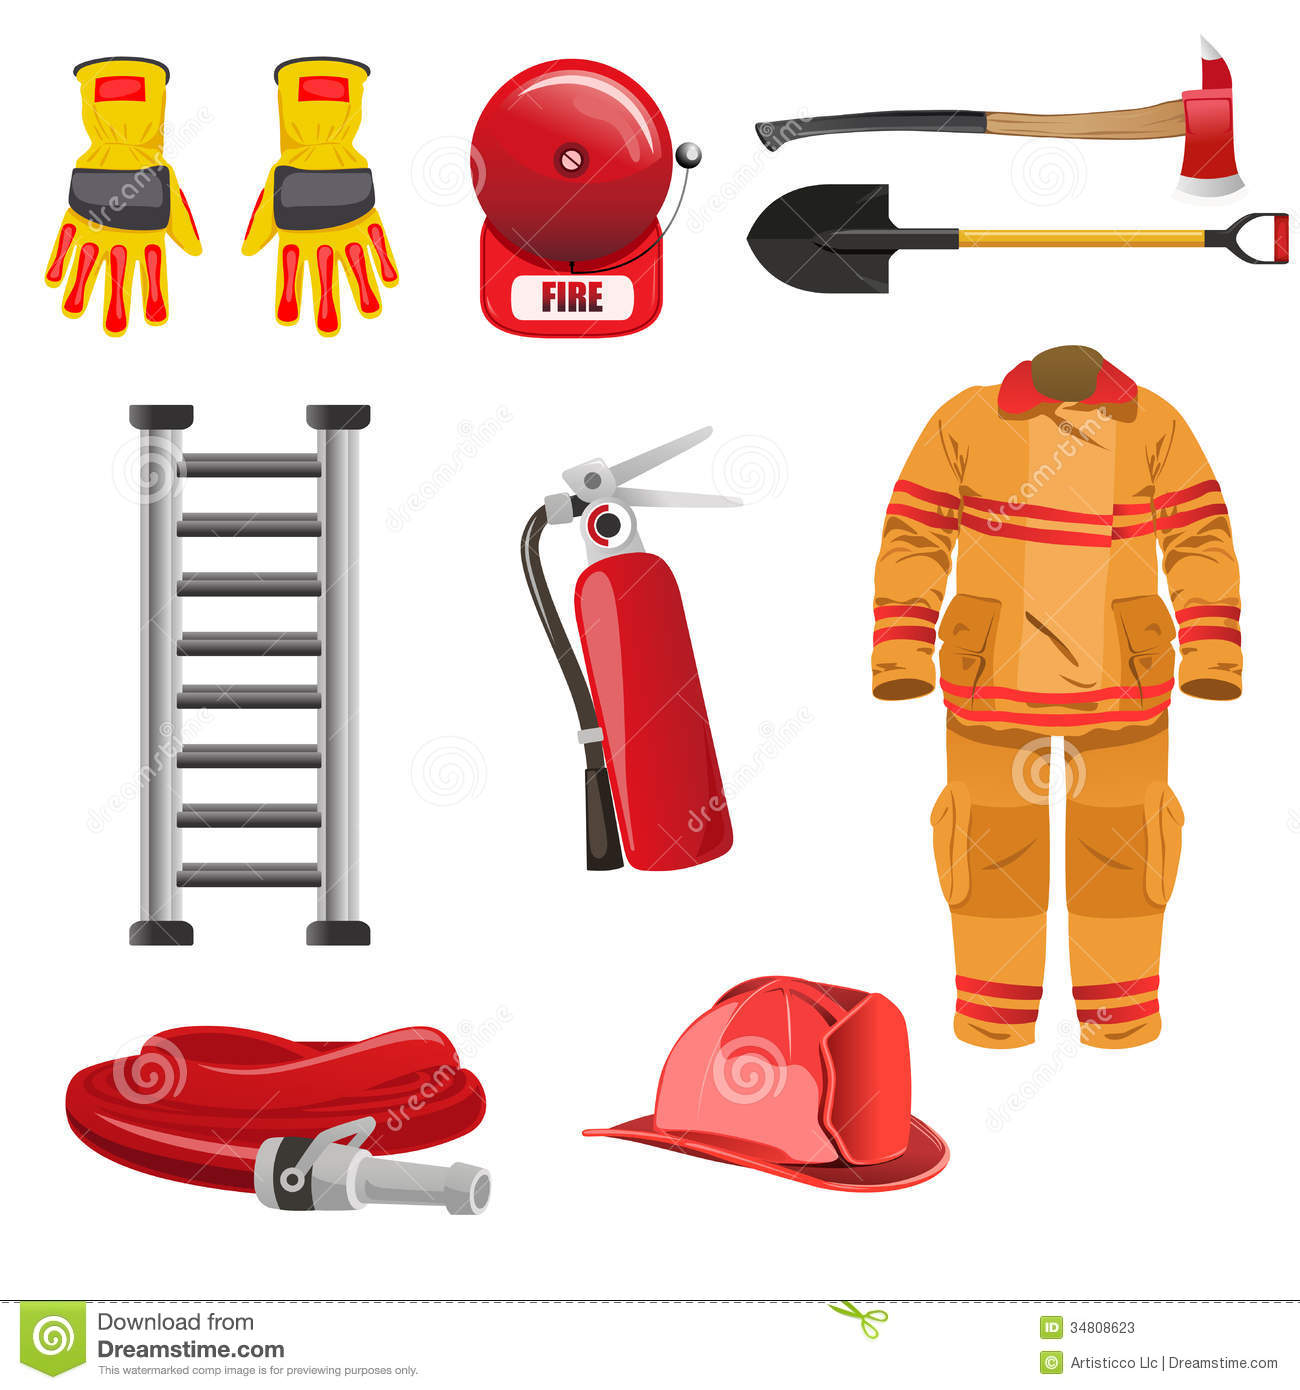 hight resolution of firefighters icons stock photos image 34808623